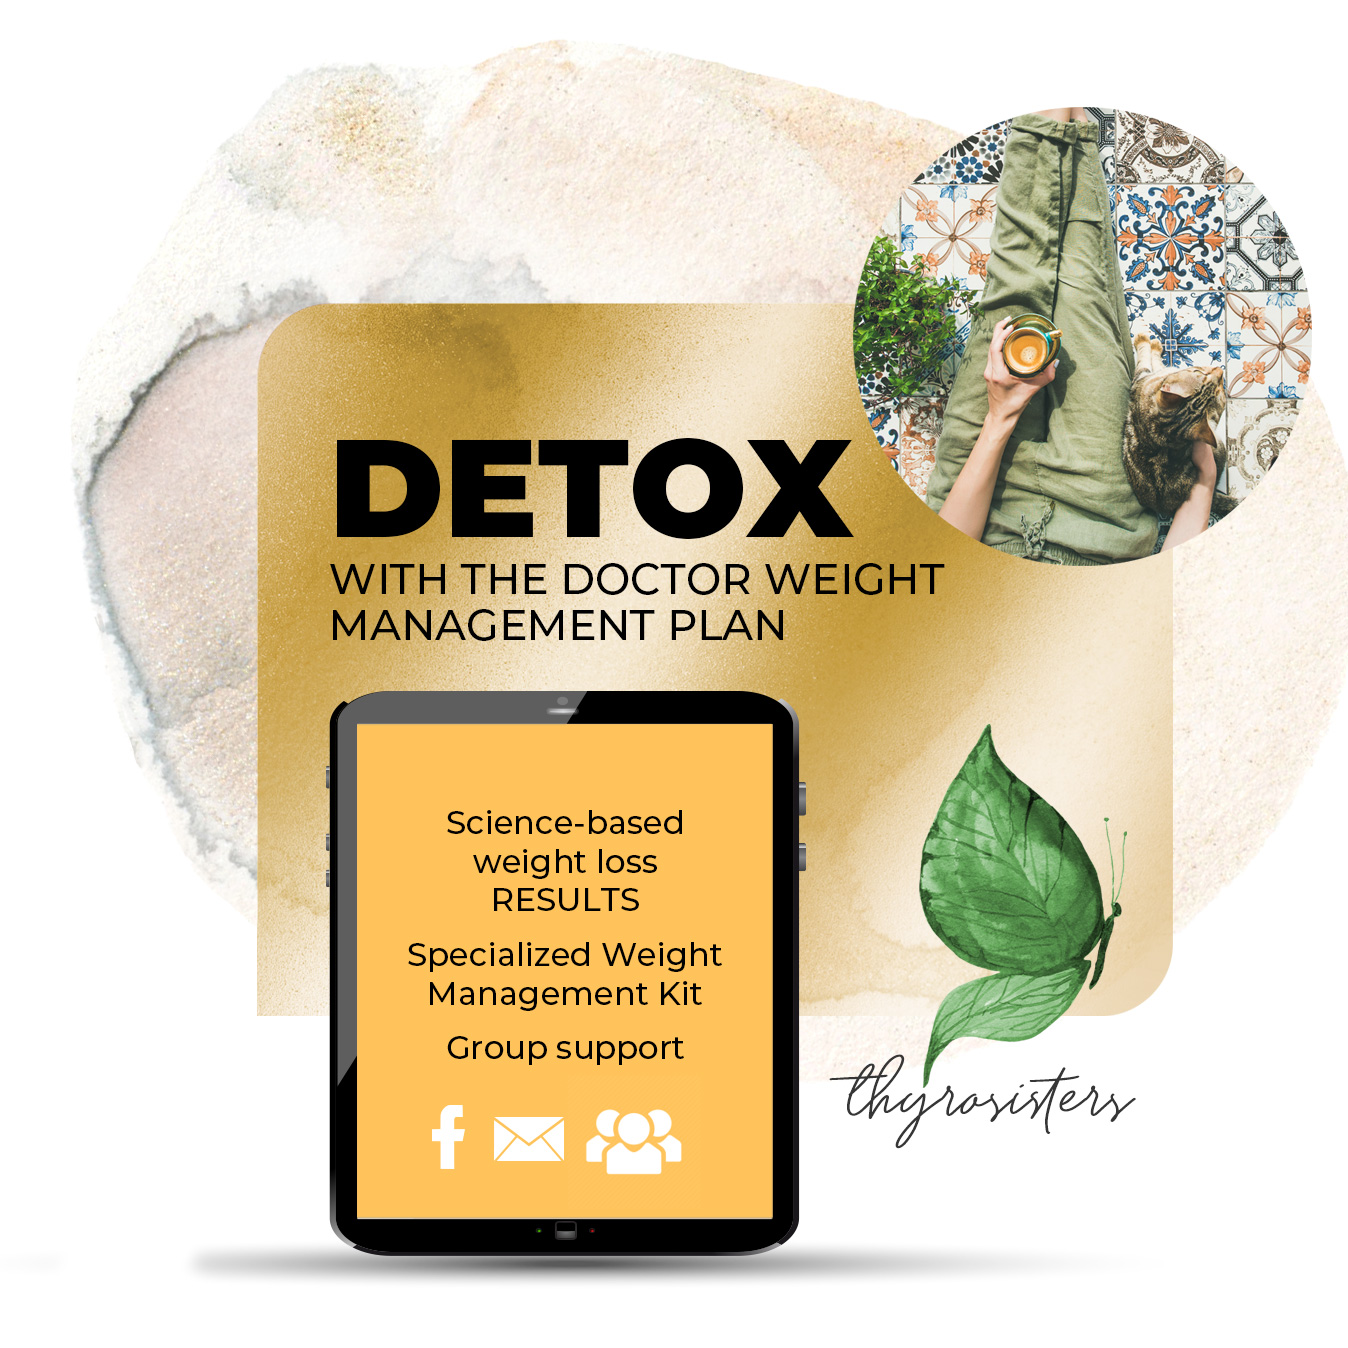 Detox with the Doctor Weight Management Program